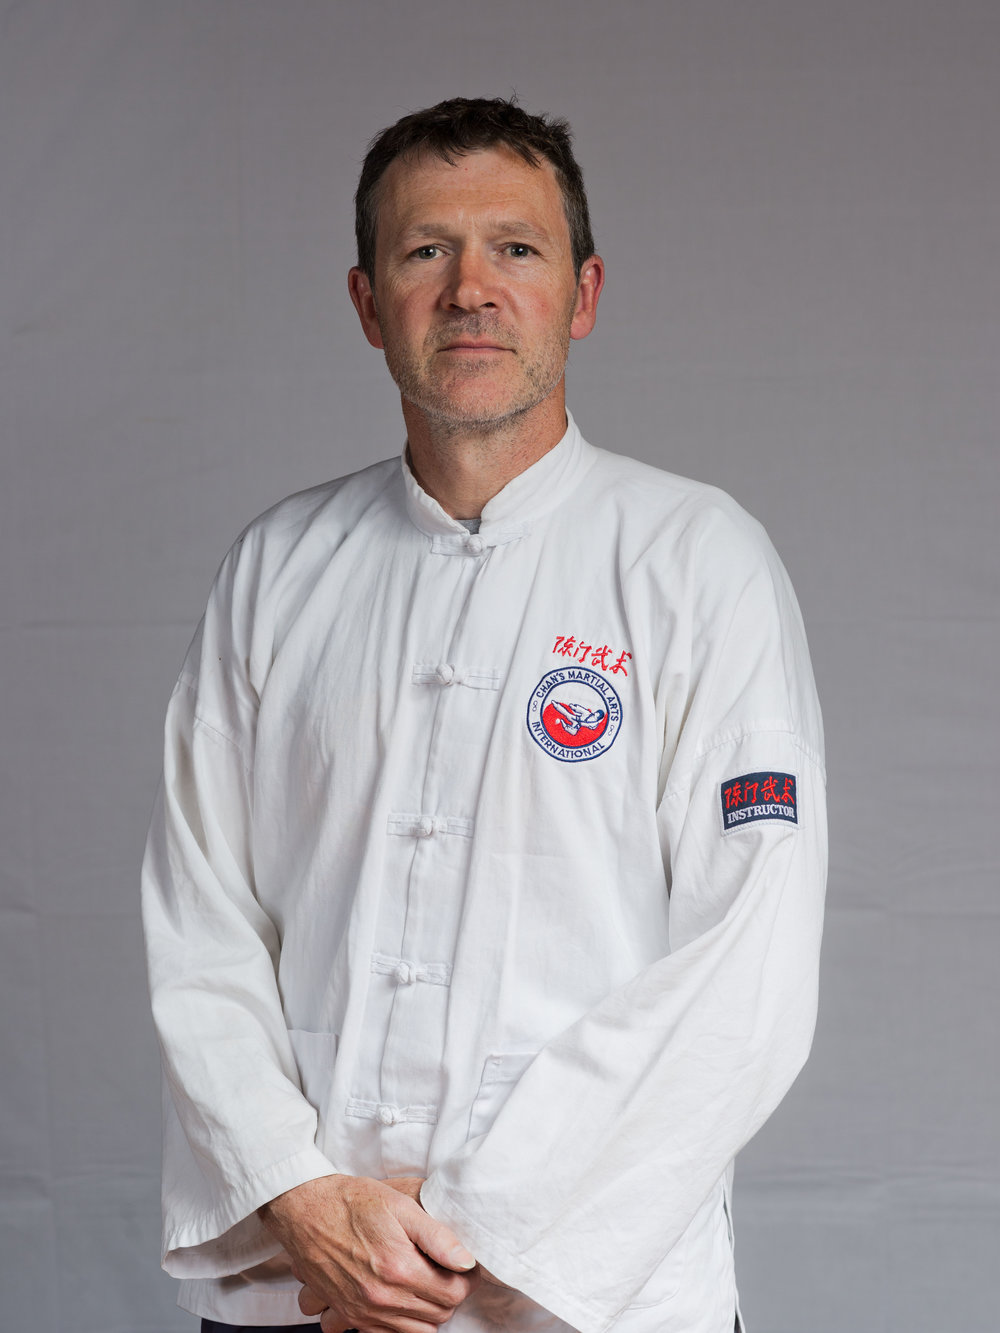 Senior Instructor - Mr Chris Allen